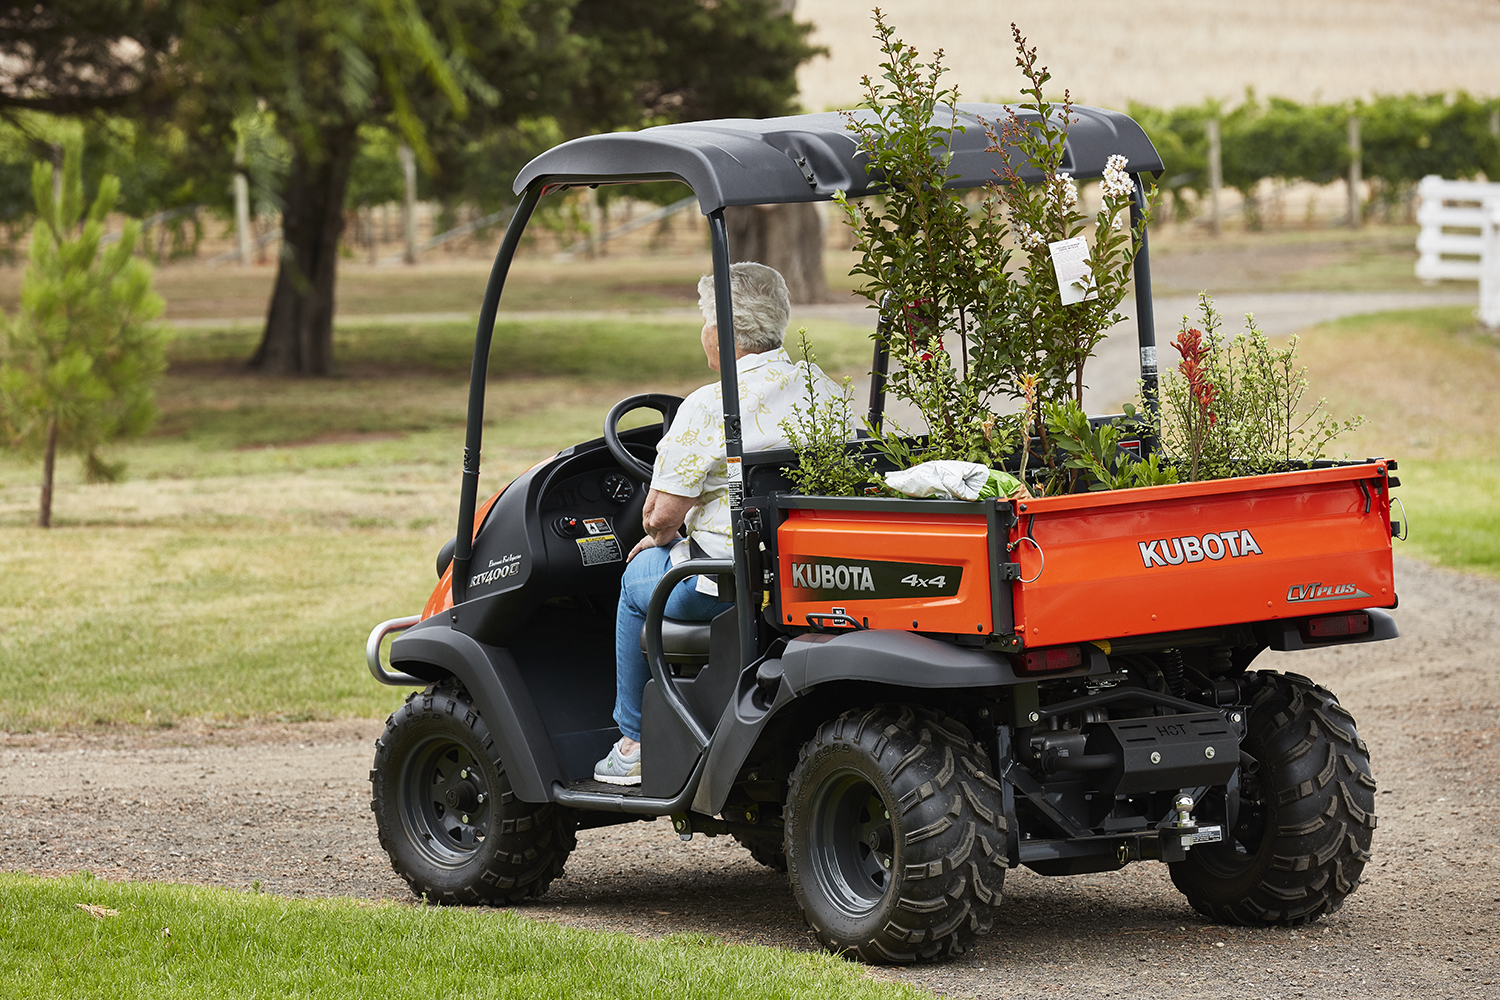 Kubota RTV 400 petrol utility vehicle